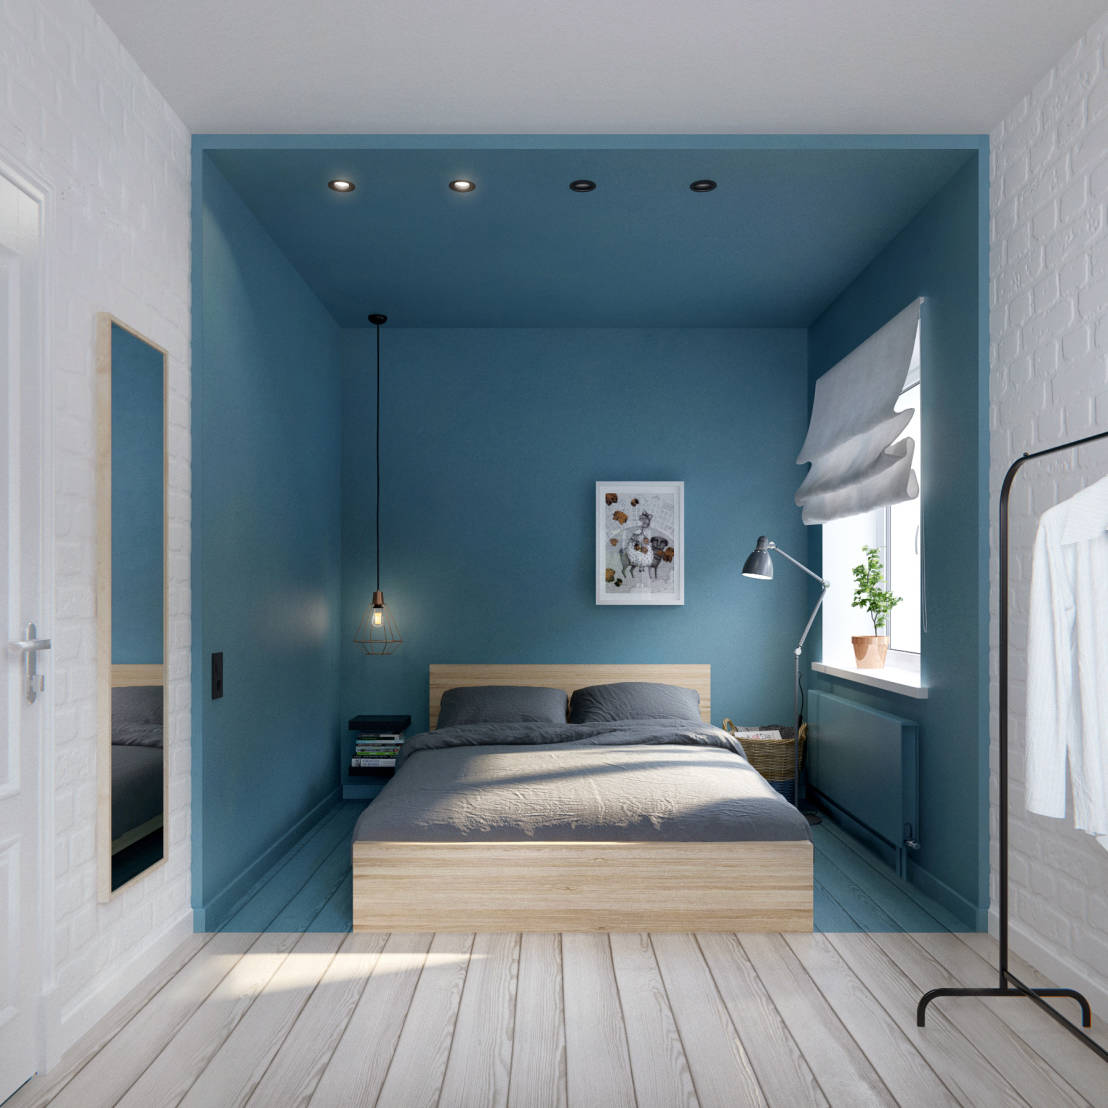 Partitioned Bedroom Partition Your Bedroom In These 9 Clever Ways